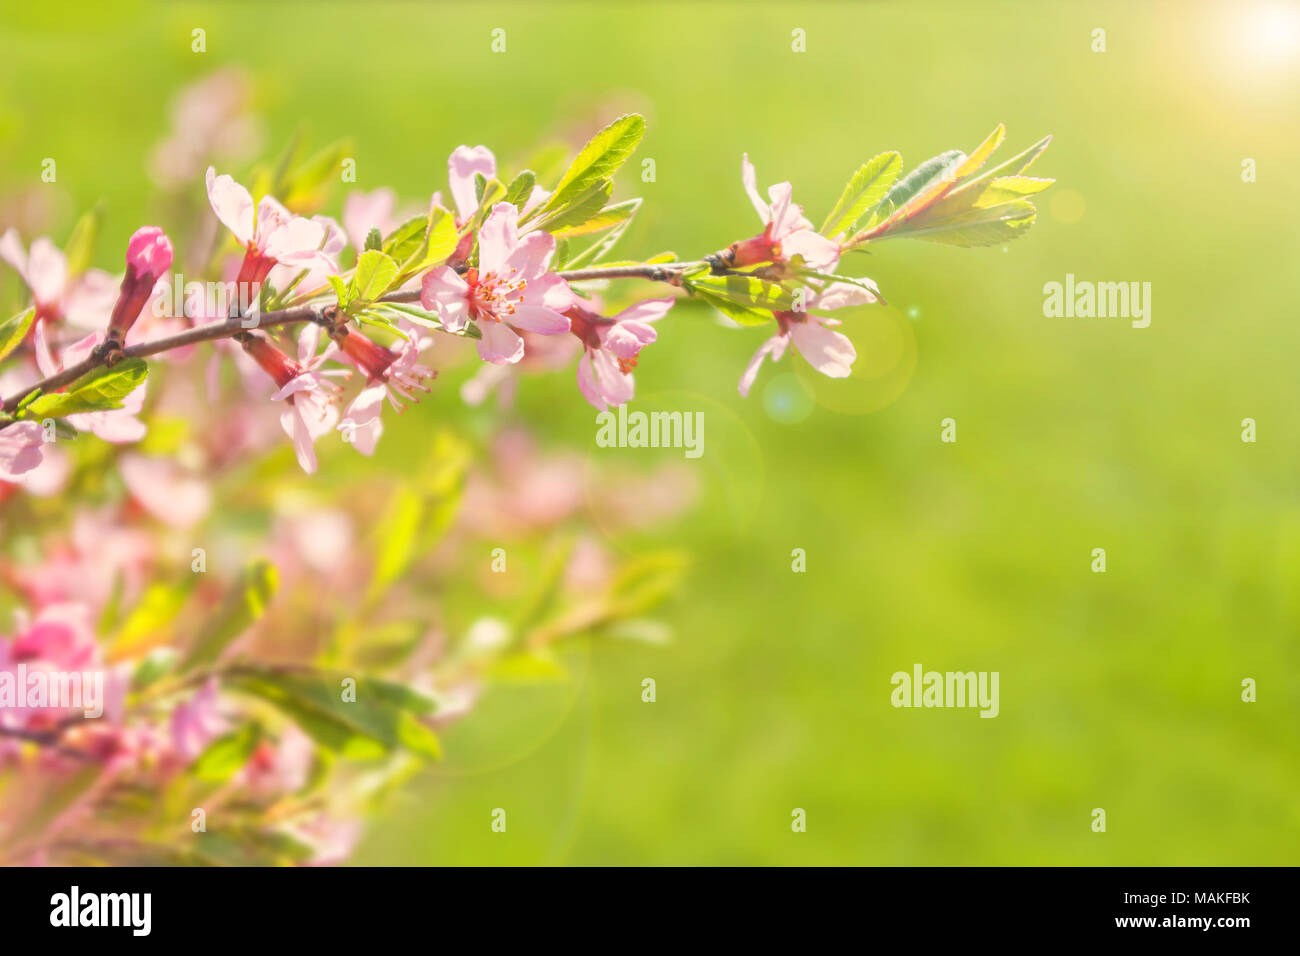 Beautiful Pink Flowers Against Green Grass With Sun Shining Stock